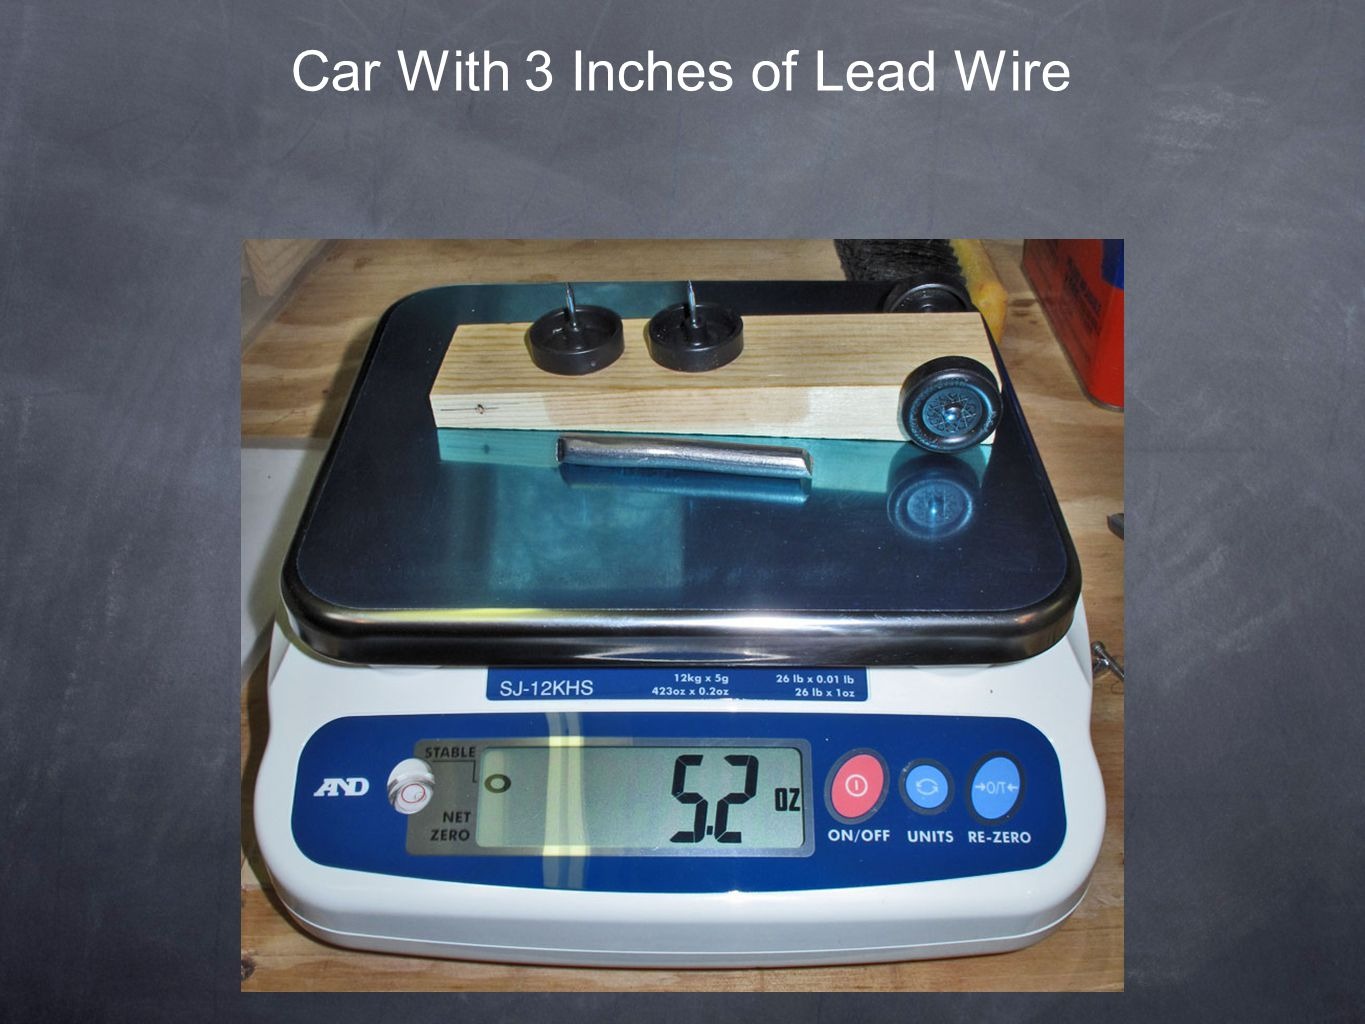 Car With 3 Inches of Lead Wire